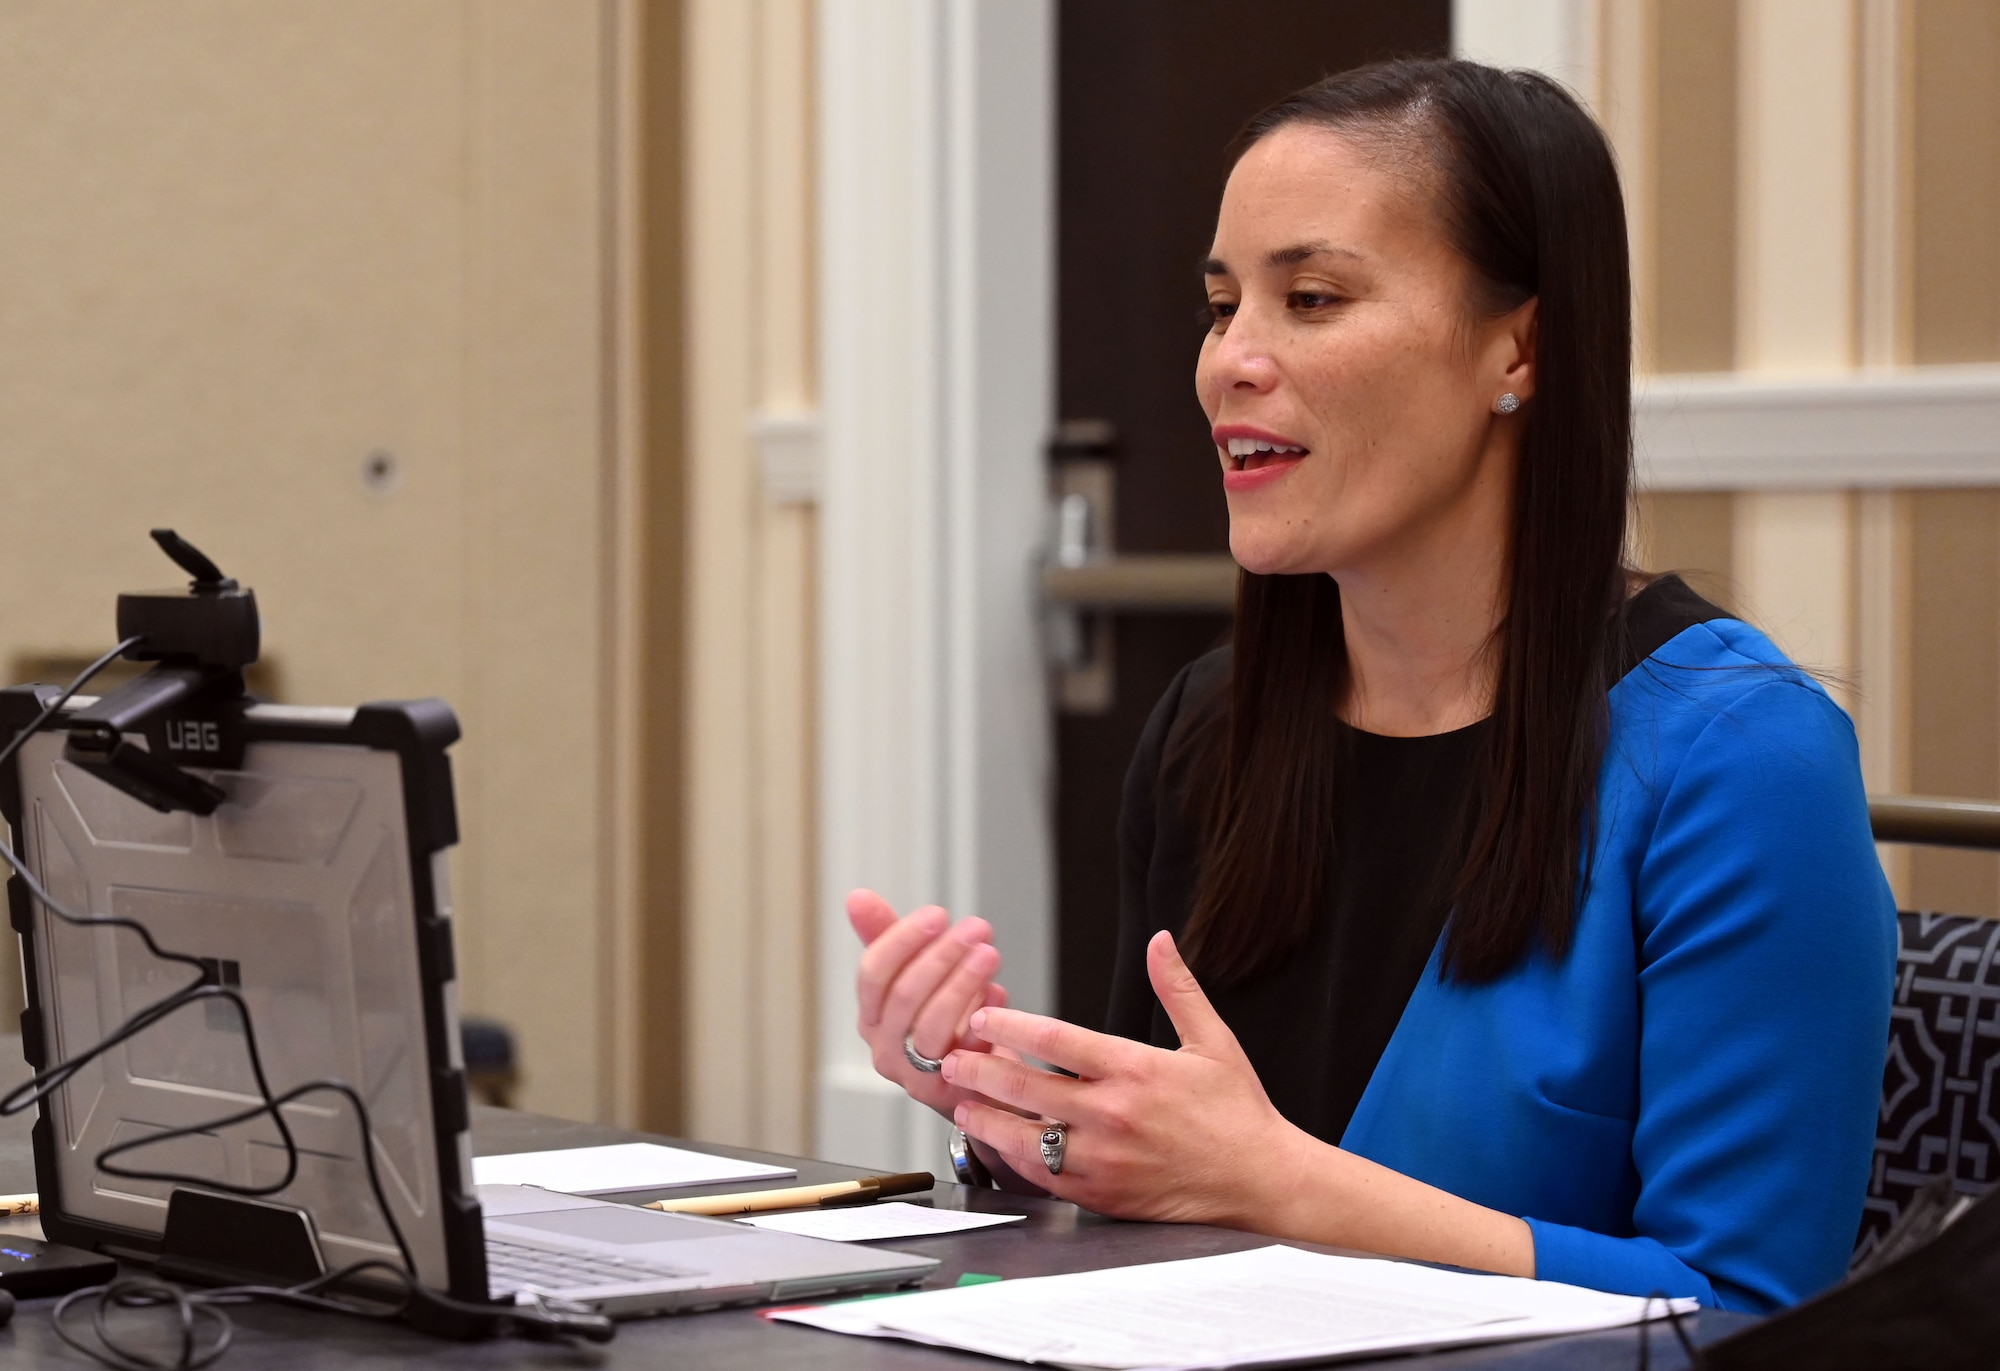 Under Secretary of the Air Force Gina Ortiz Jones speaks at the virtual Congressional Equality Caucus Don't Ask Don't Tell Commemoration Event, held Sept. 20, 2021.